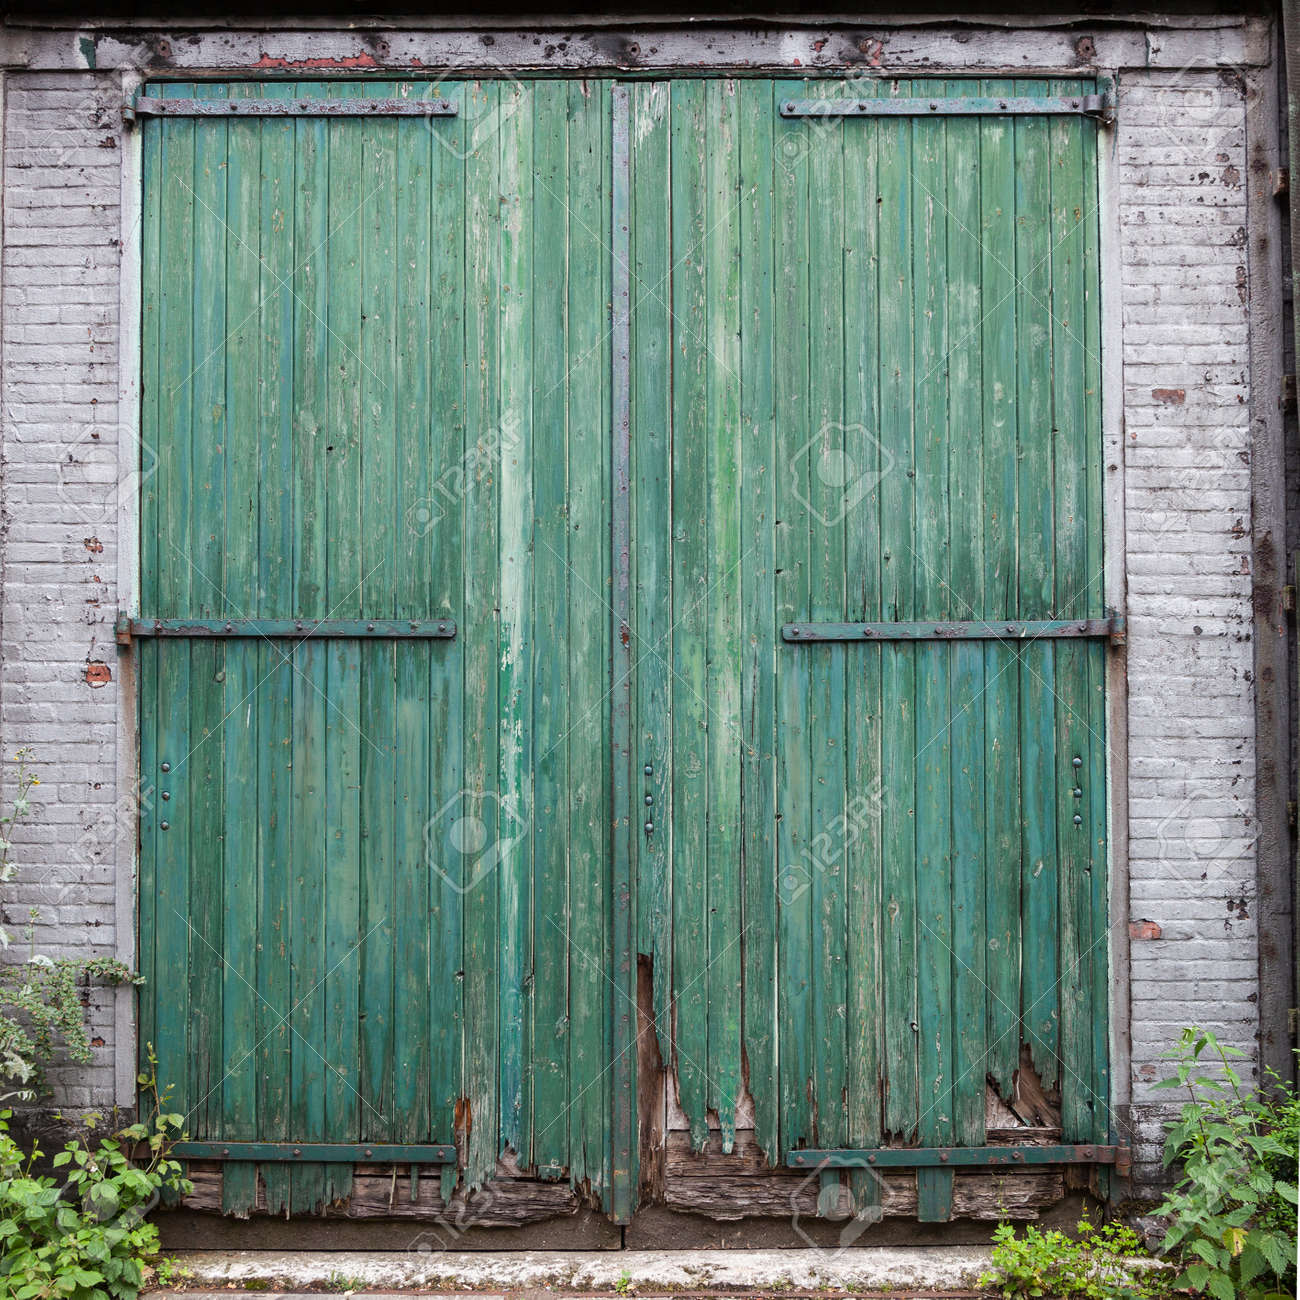 Large Old Barn Doors With Peeling Green Paint In White Brick Stock